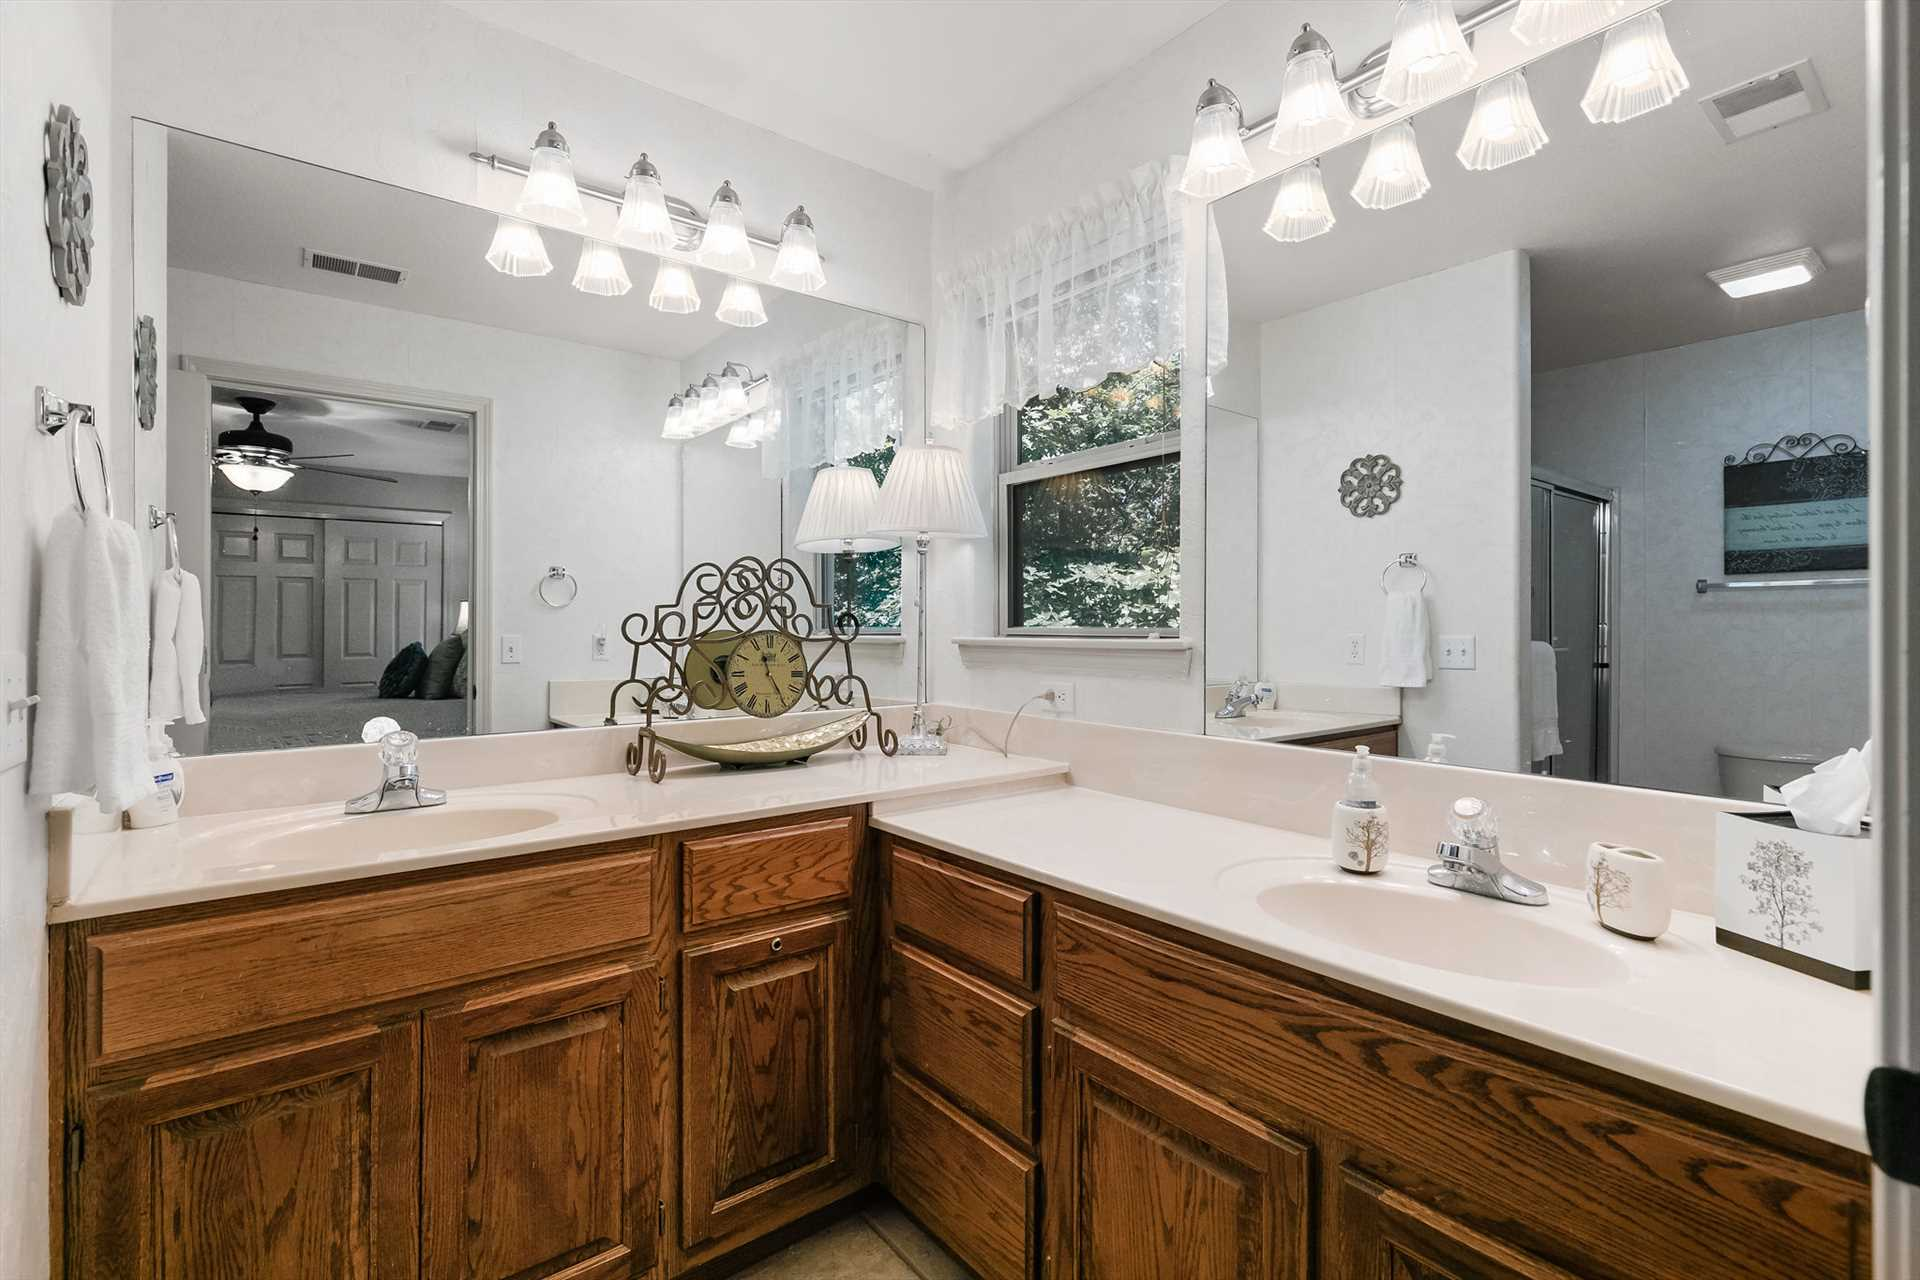 The large bathroom boasts two sinks.